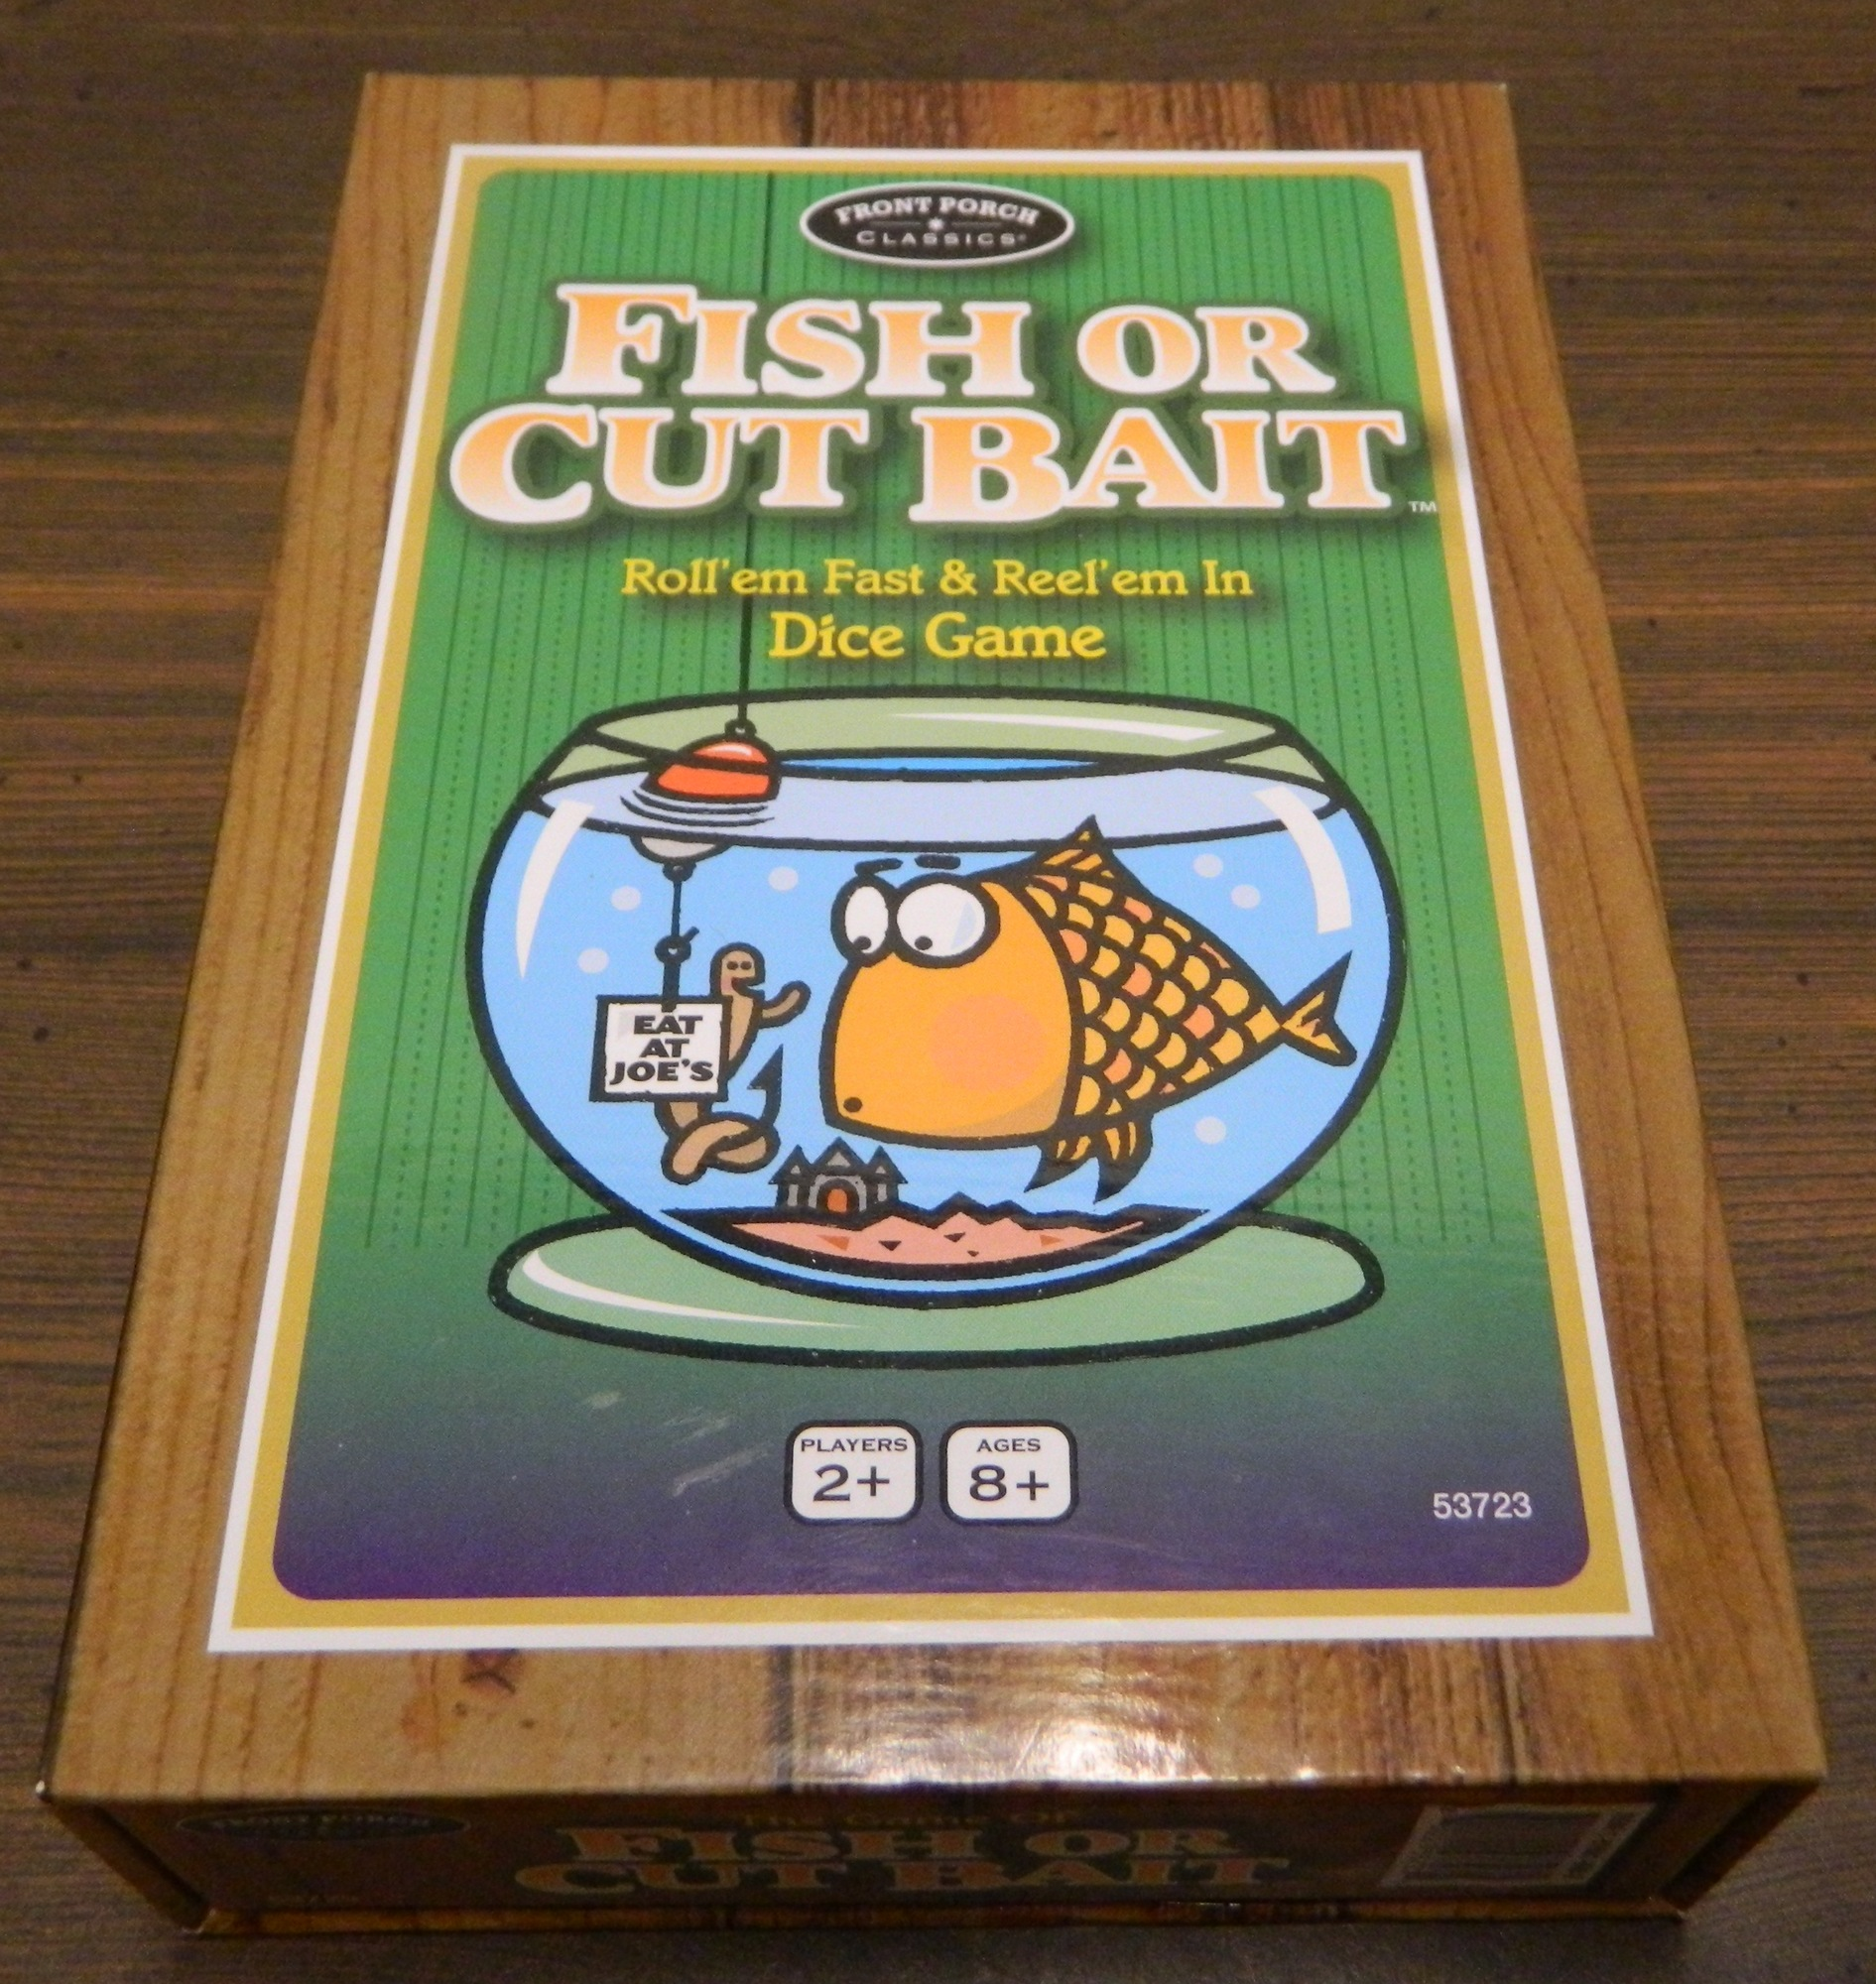 Box for Fish or Cut Bait